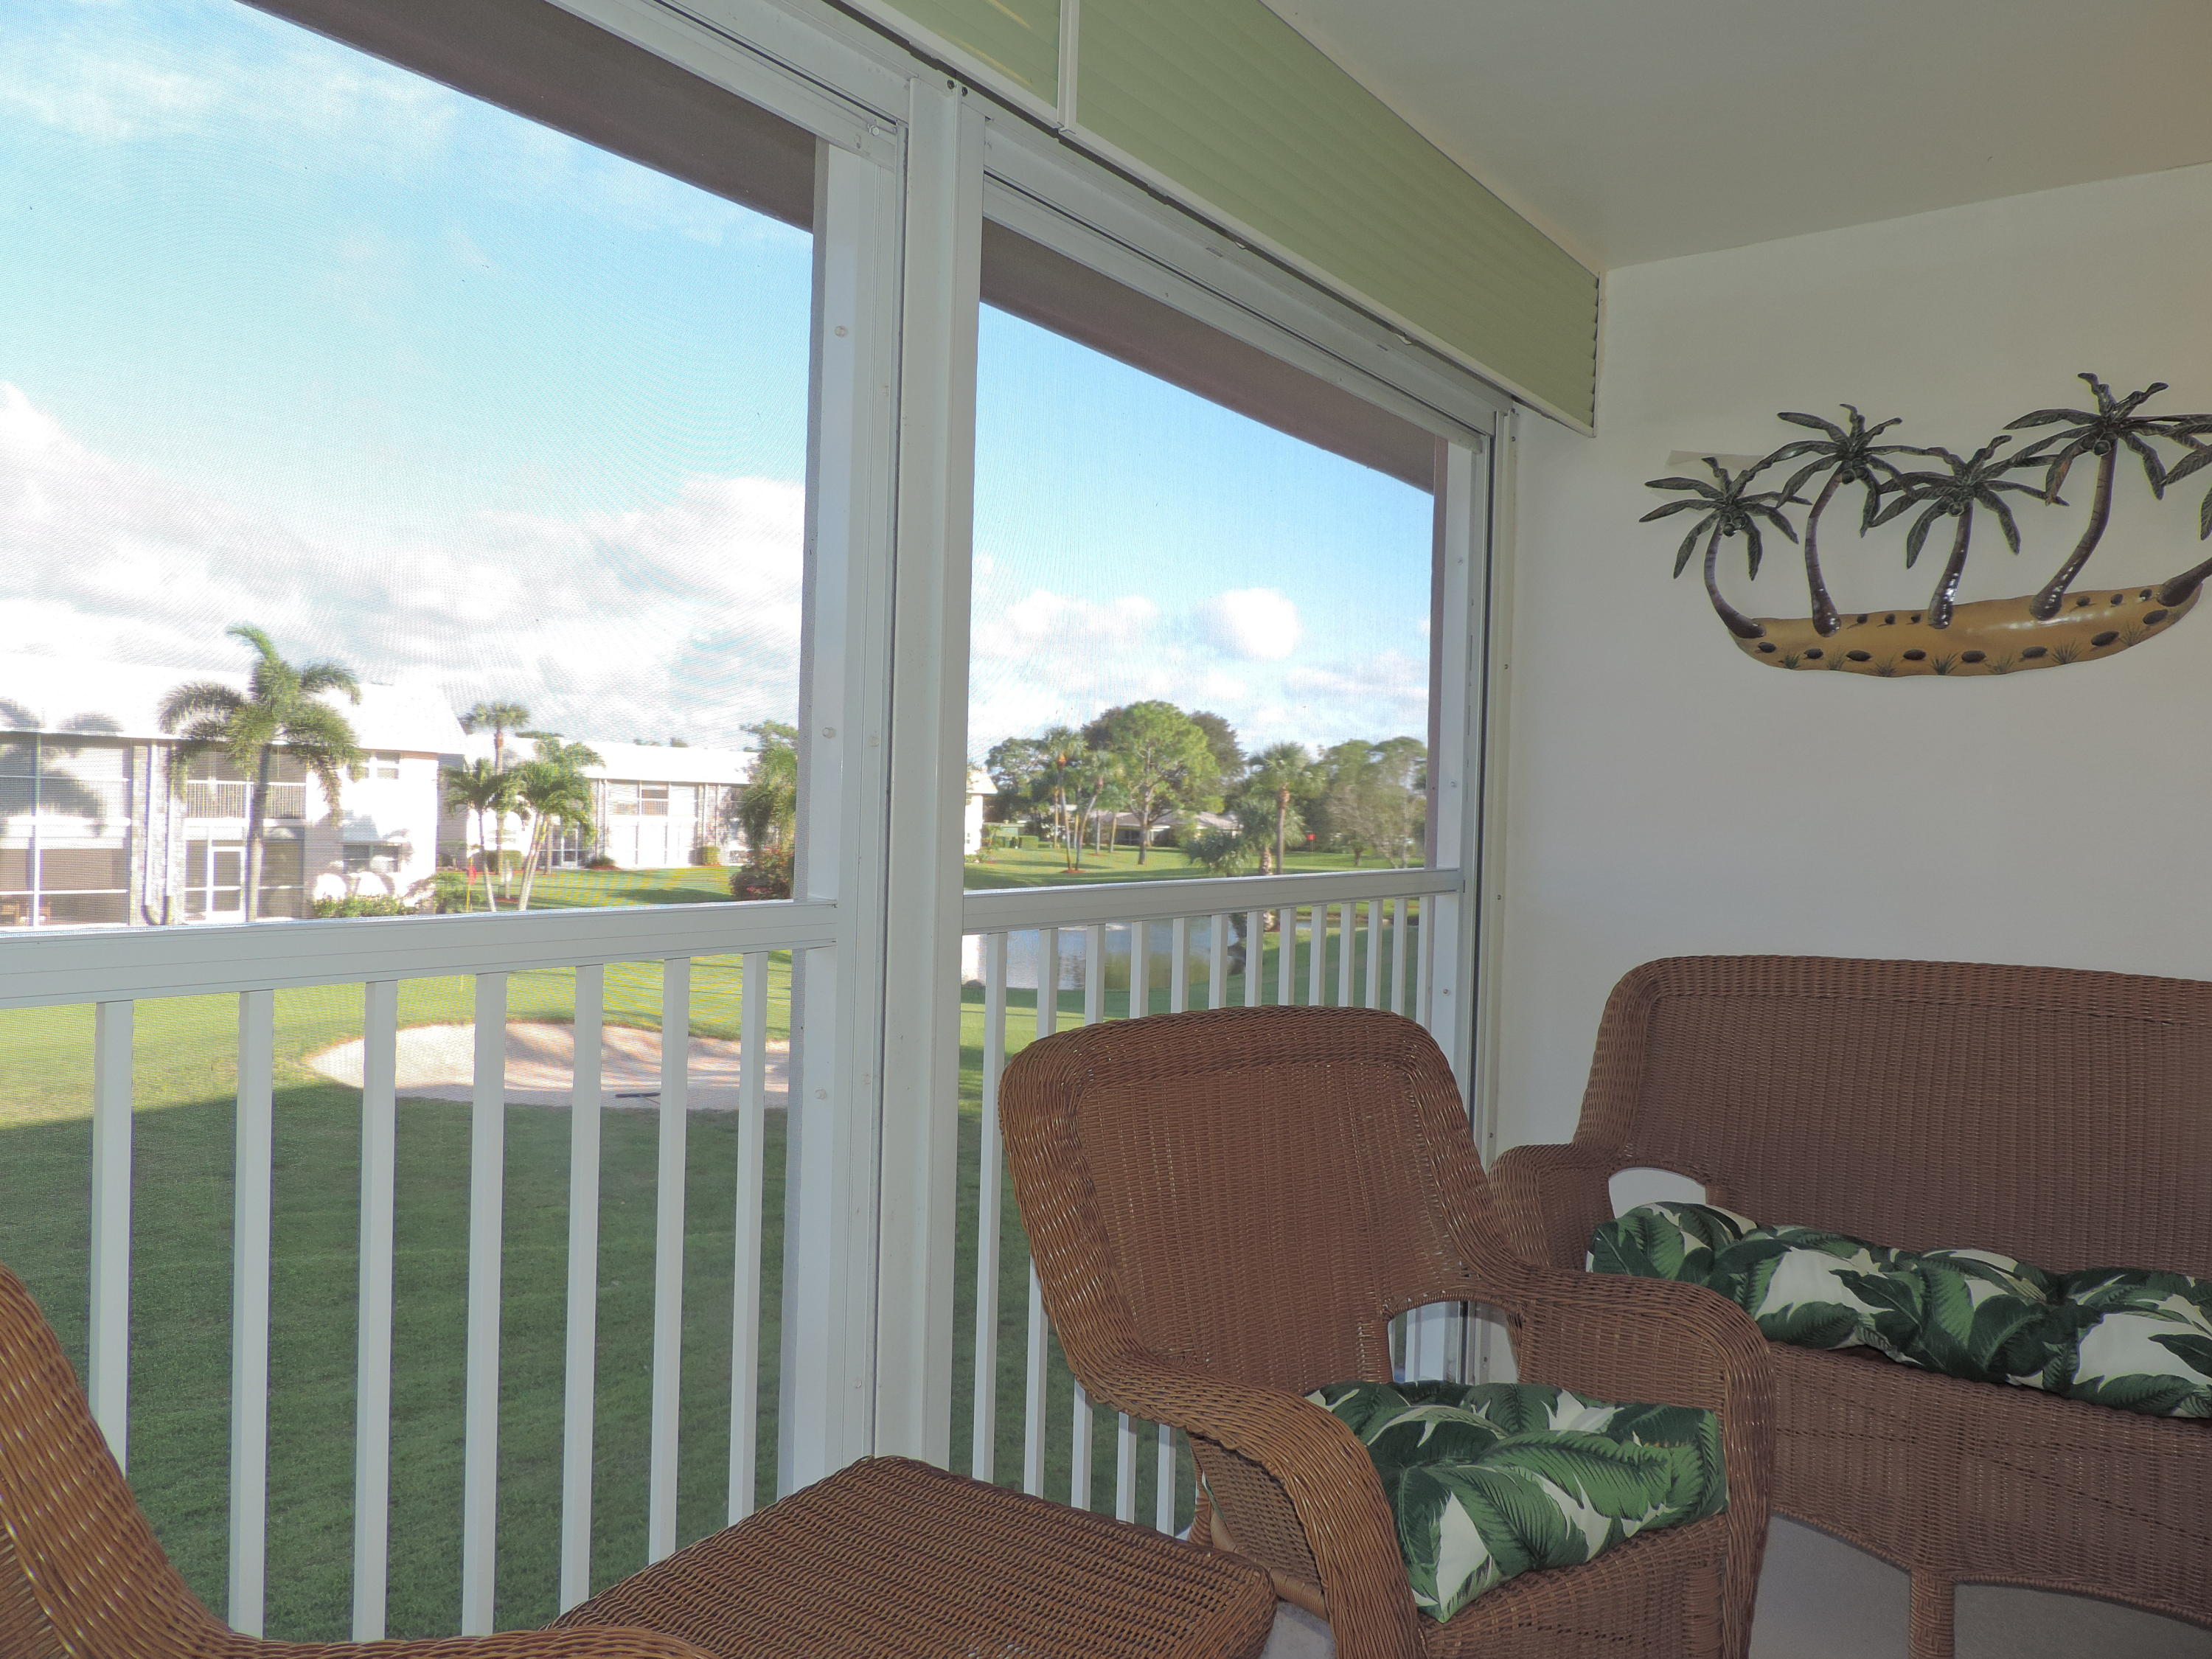 18081 Country Club Drive 100, Tequesta, Florida 33469, 2 Bedrooms Bedrooms, ,2 BathroomsBathrooms,F,Condominium,Country Club,RX-10484845